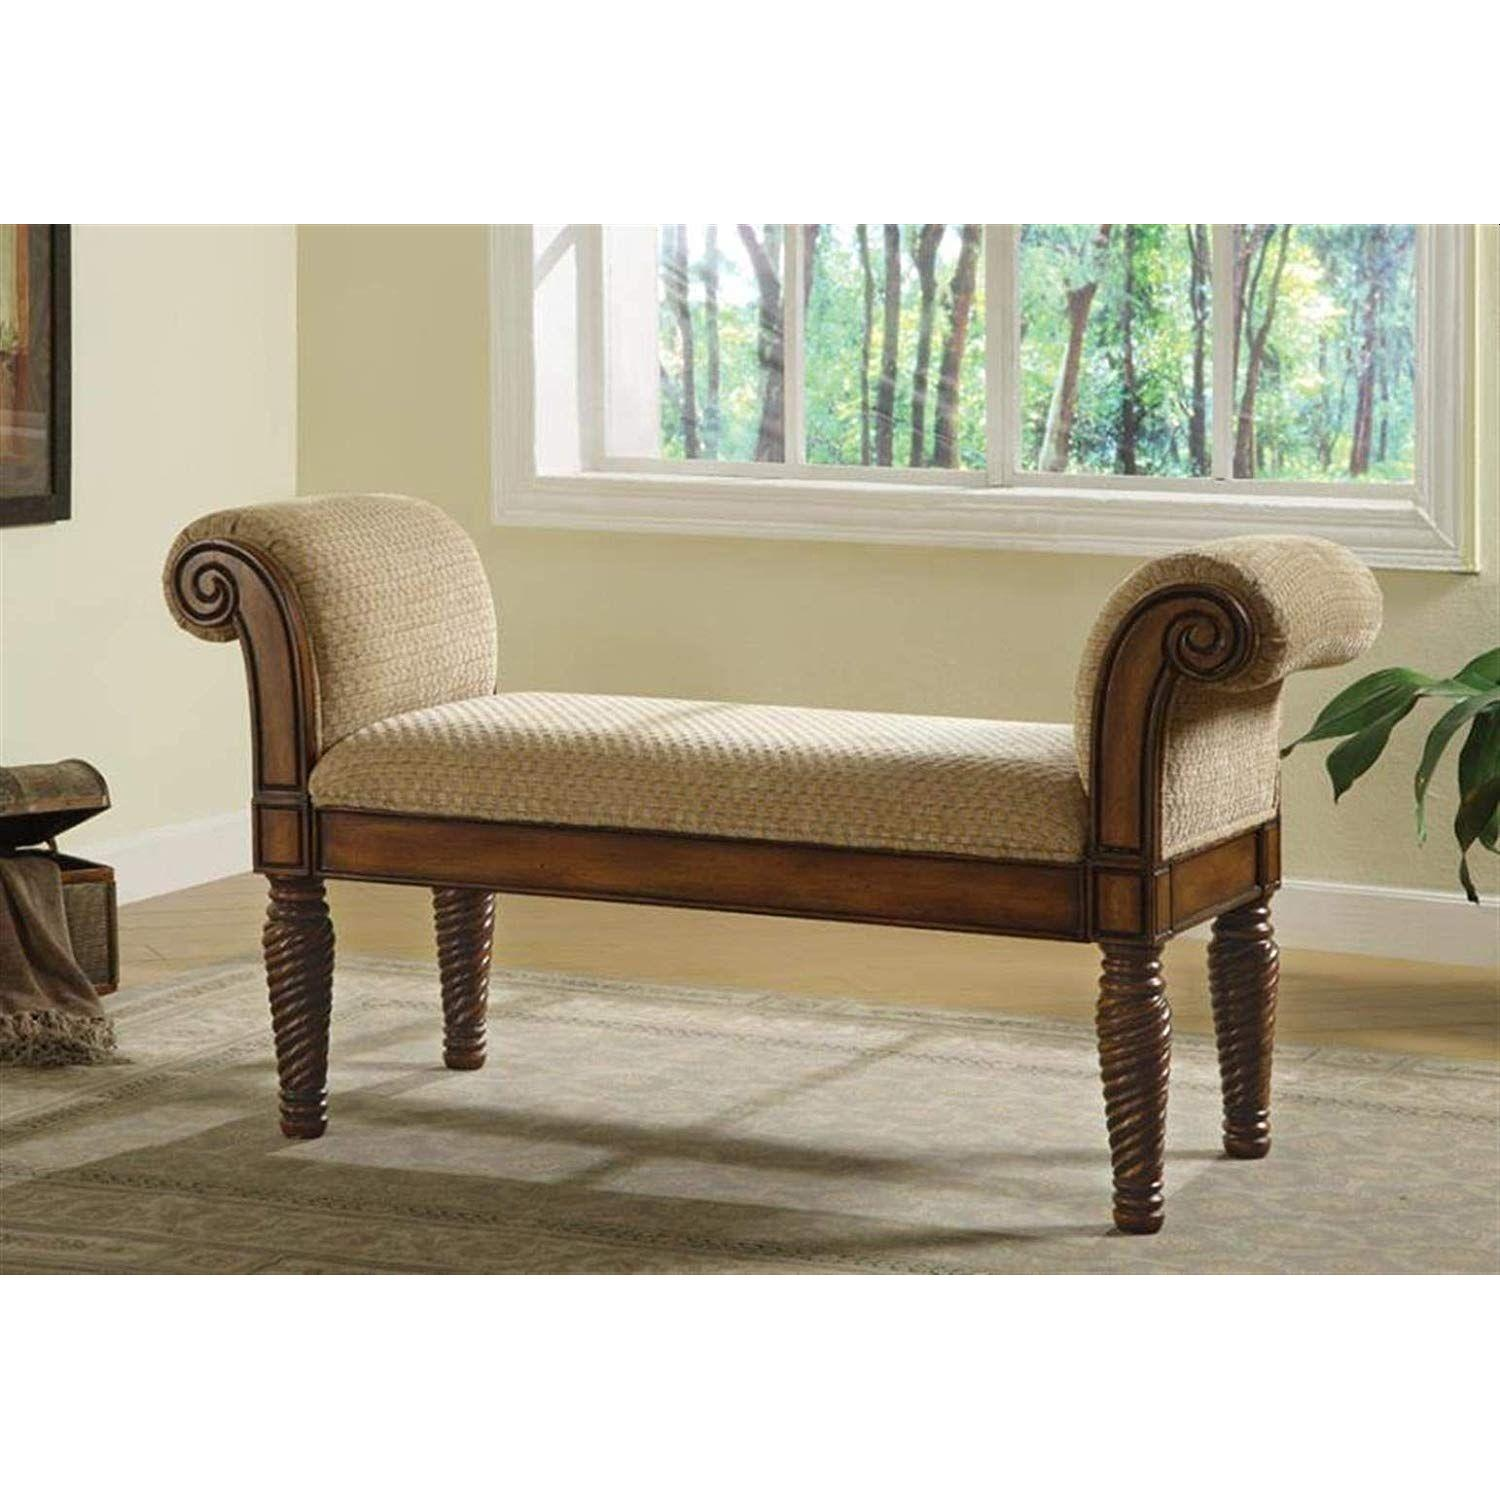 Traditional Style Bench Upholstered in Camel Brown Chenille - image-2